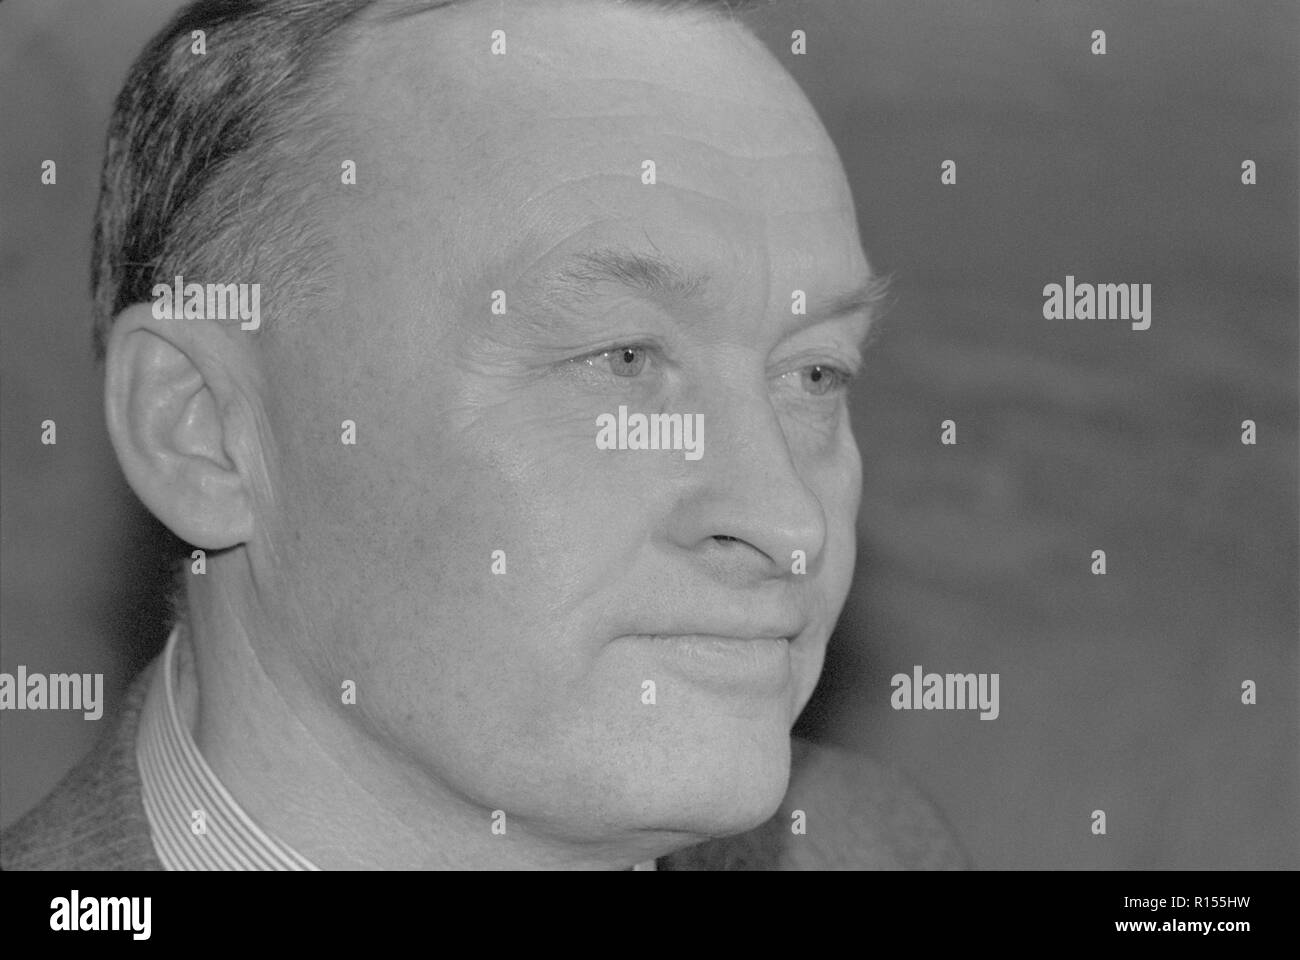 Moscow, USSR - December 21, 1990: Portrait of People's Deputy of the USSR Oleg Danilovich Kalugin at 4th Congress of People's Deputies of the USSR Stock Photo